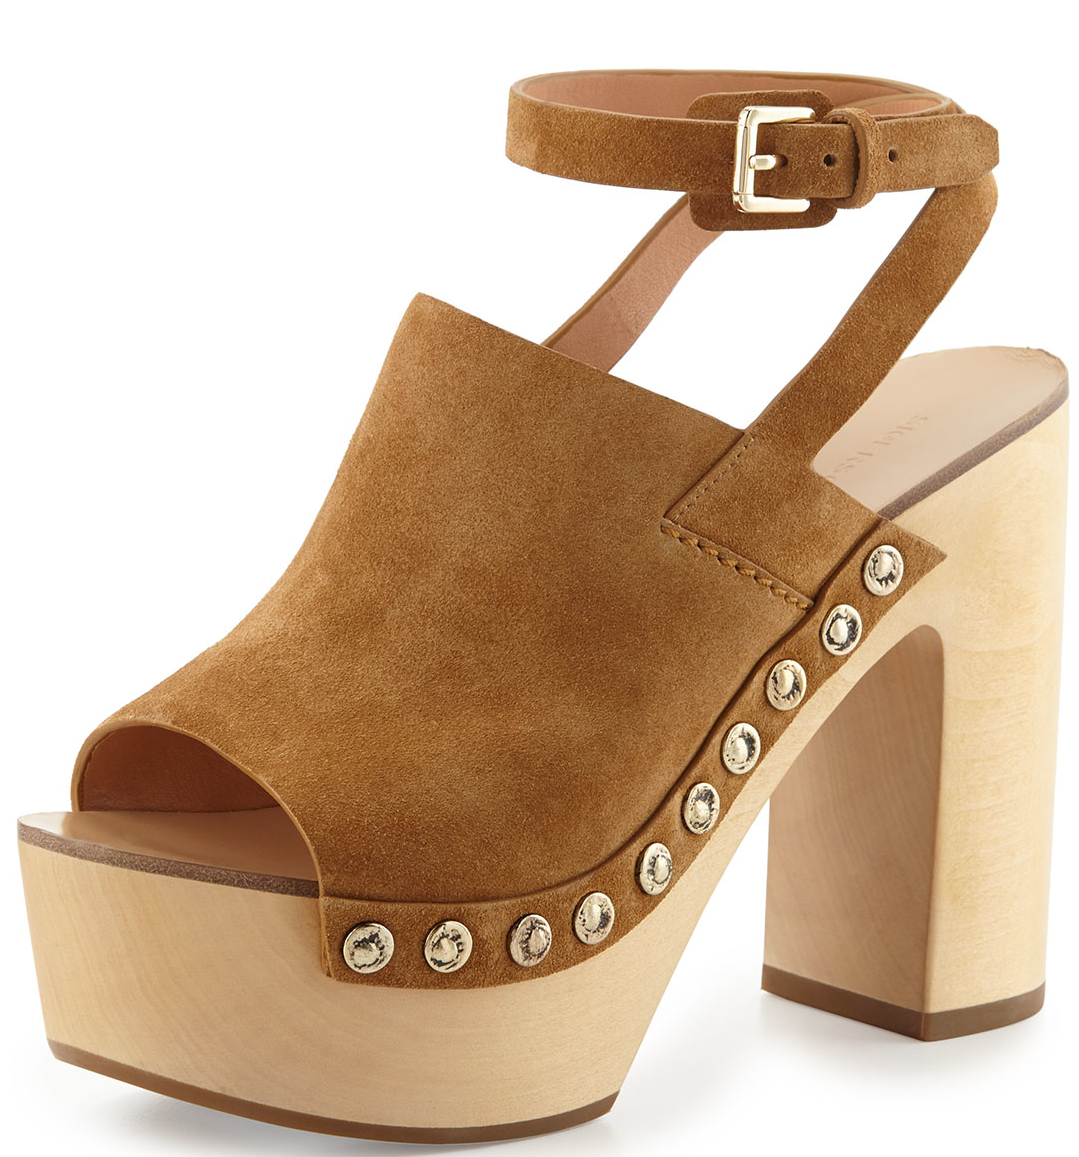 sigerson-morrison-caramel-quella-platform-clog-sandal-brown-product-0-587534921-normal